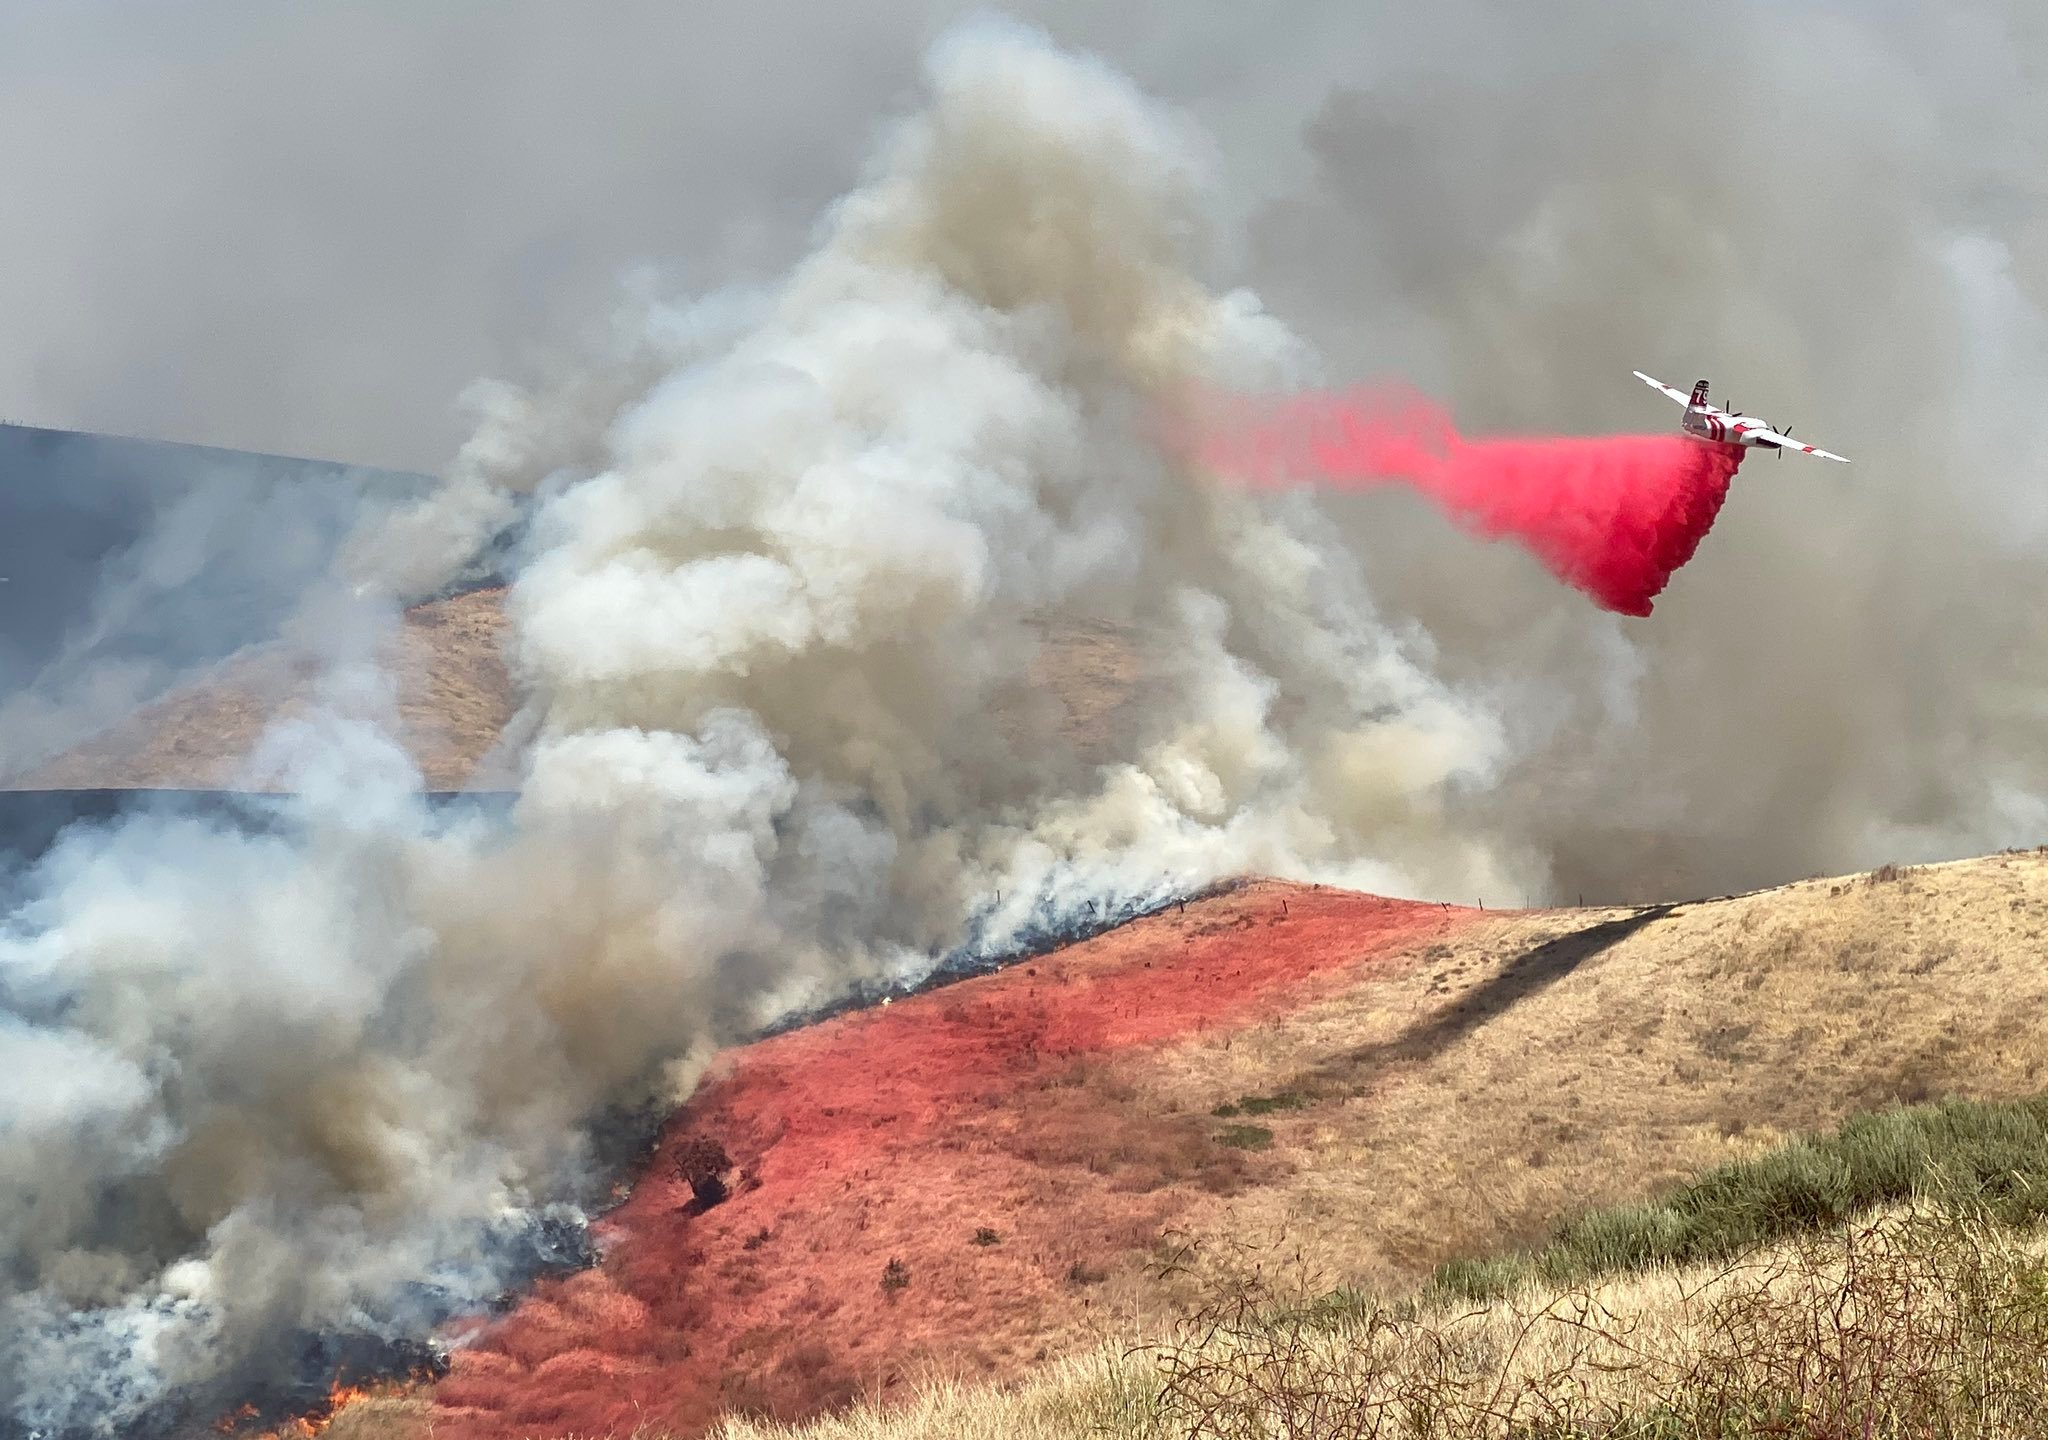 The Santa Barbara County Fire Department tweeted this photo of the Drum Fire on June 14, 2020.